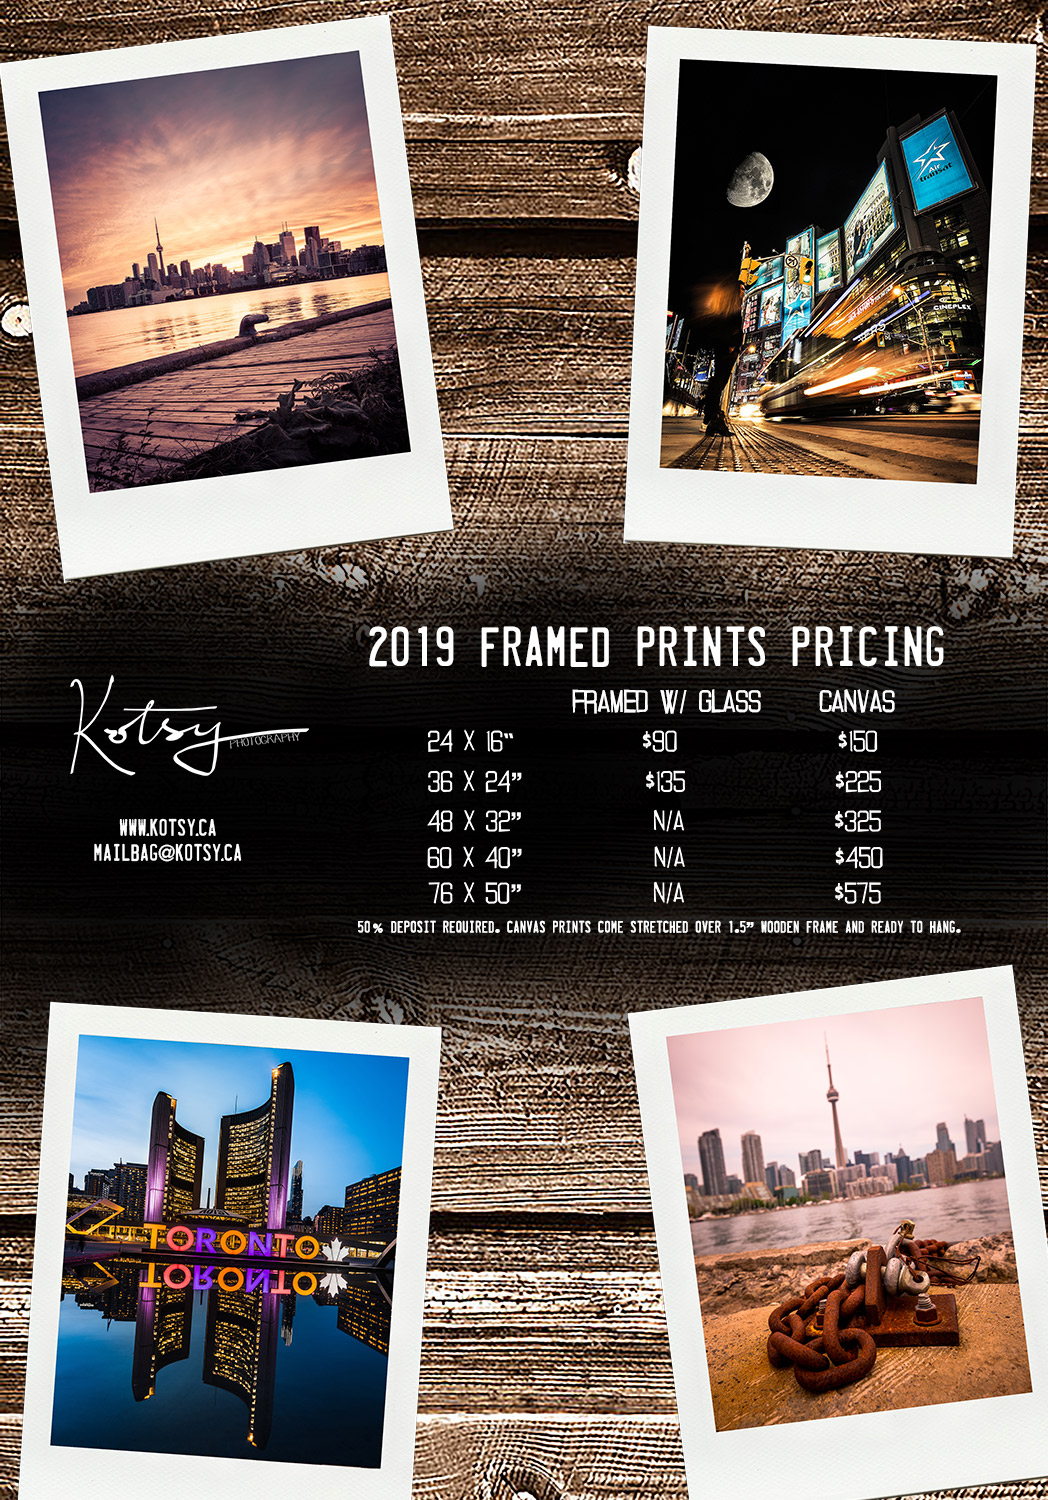 "2019 Framed Prints Pricing  Framed w/ Glass  24x16"" - $90 36x24"" - $135   Canvas  24x16"" - $150 36x24"" - $225 48x32"" - $325 60x40"" - $450 76x50"" - $575  50% deposit required. Canvas prints comes stretched over a 1.5"" wooden frame and ready to hang."